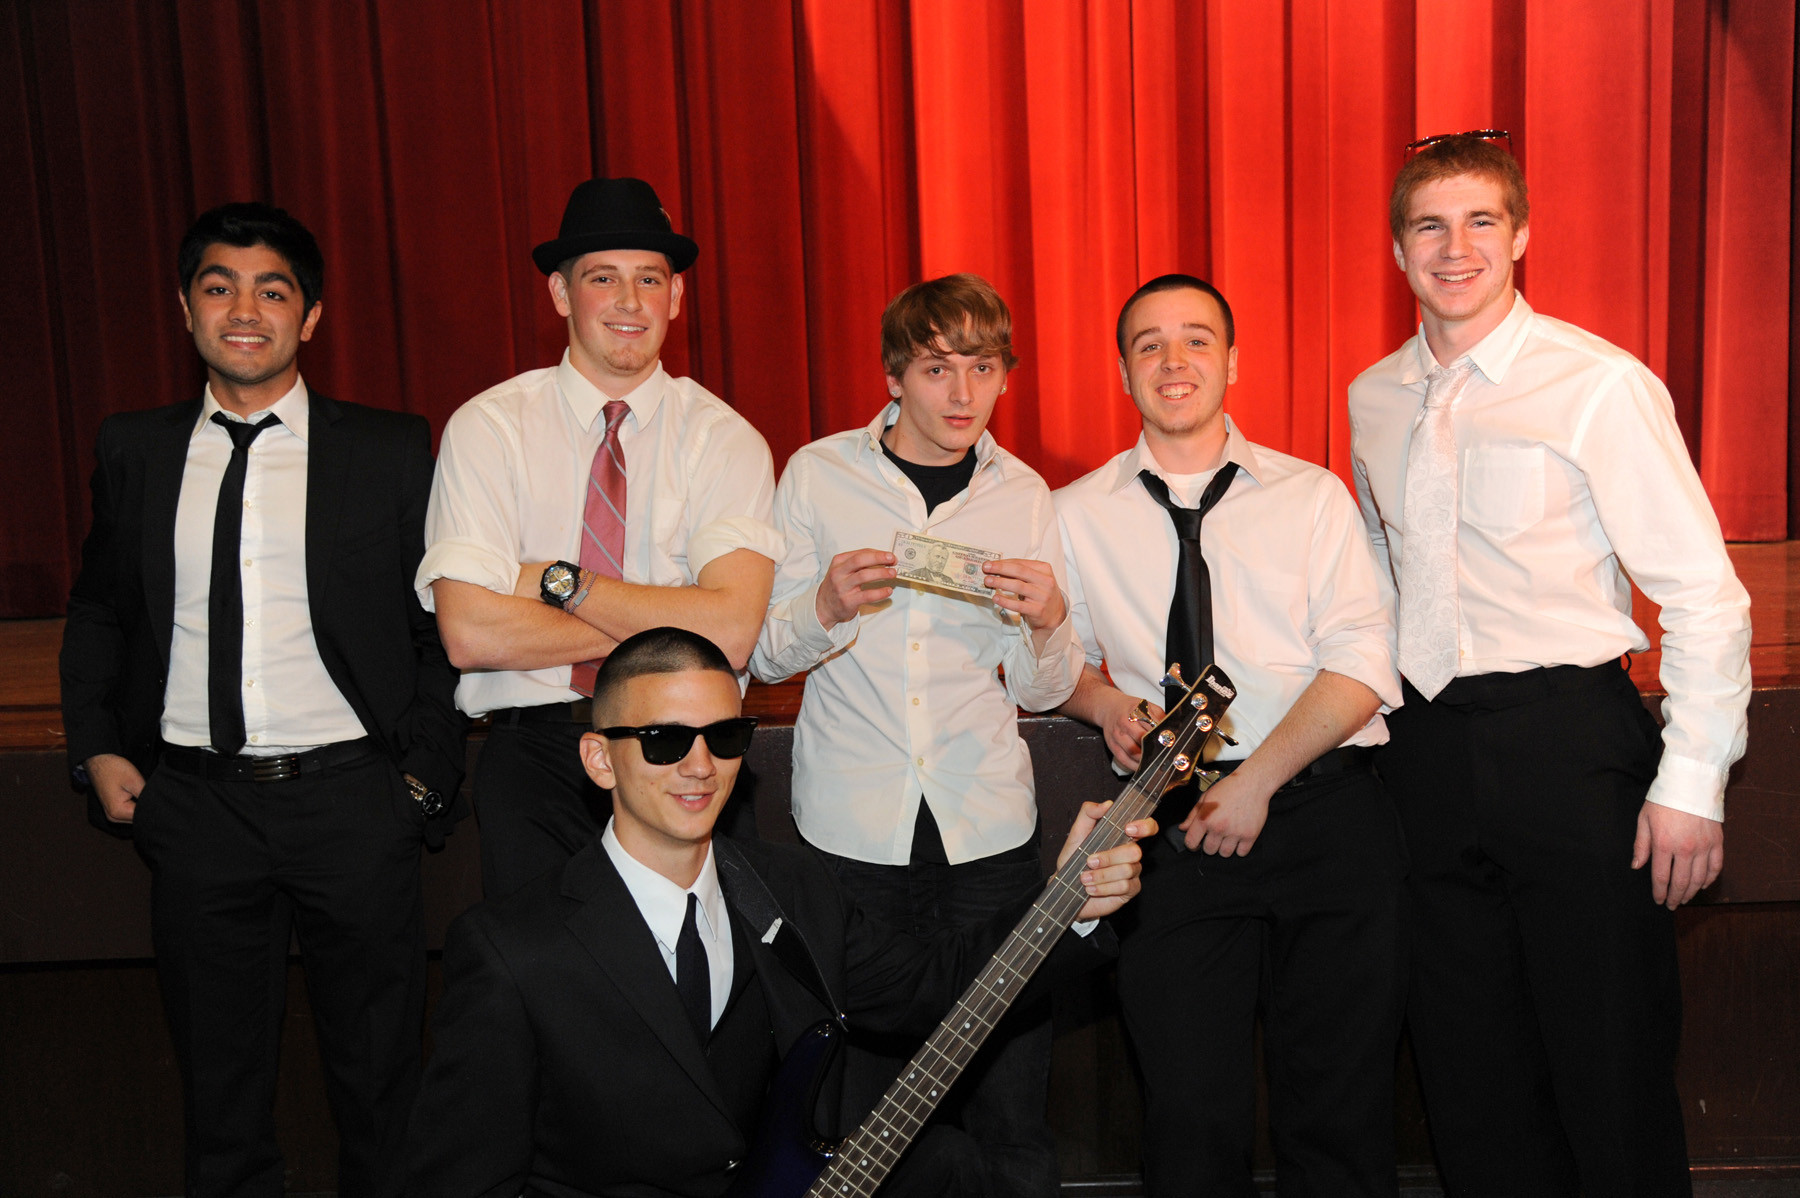 Ryan Chand, Nick Martinez, Tom Lofaso, Logan Abrams, Sean Gaffney and Mike Striano, from left, comprised James and the Giant Peaches.